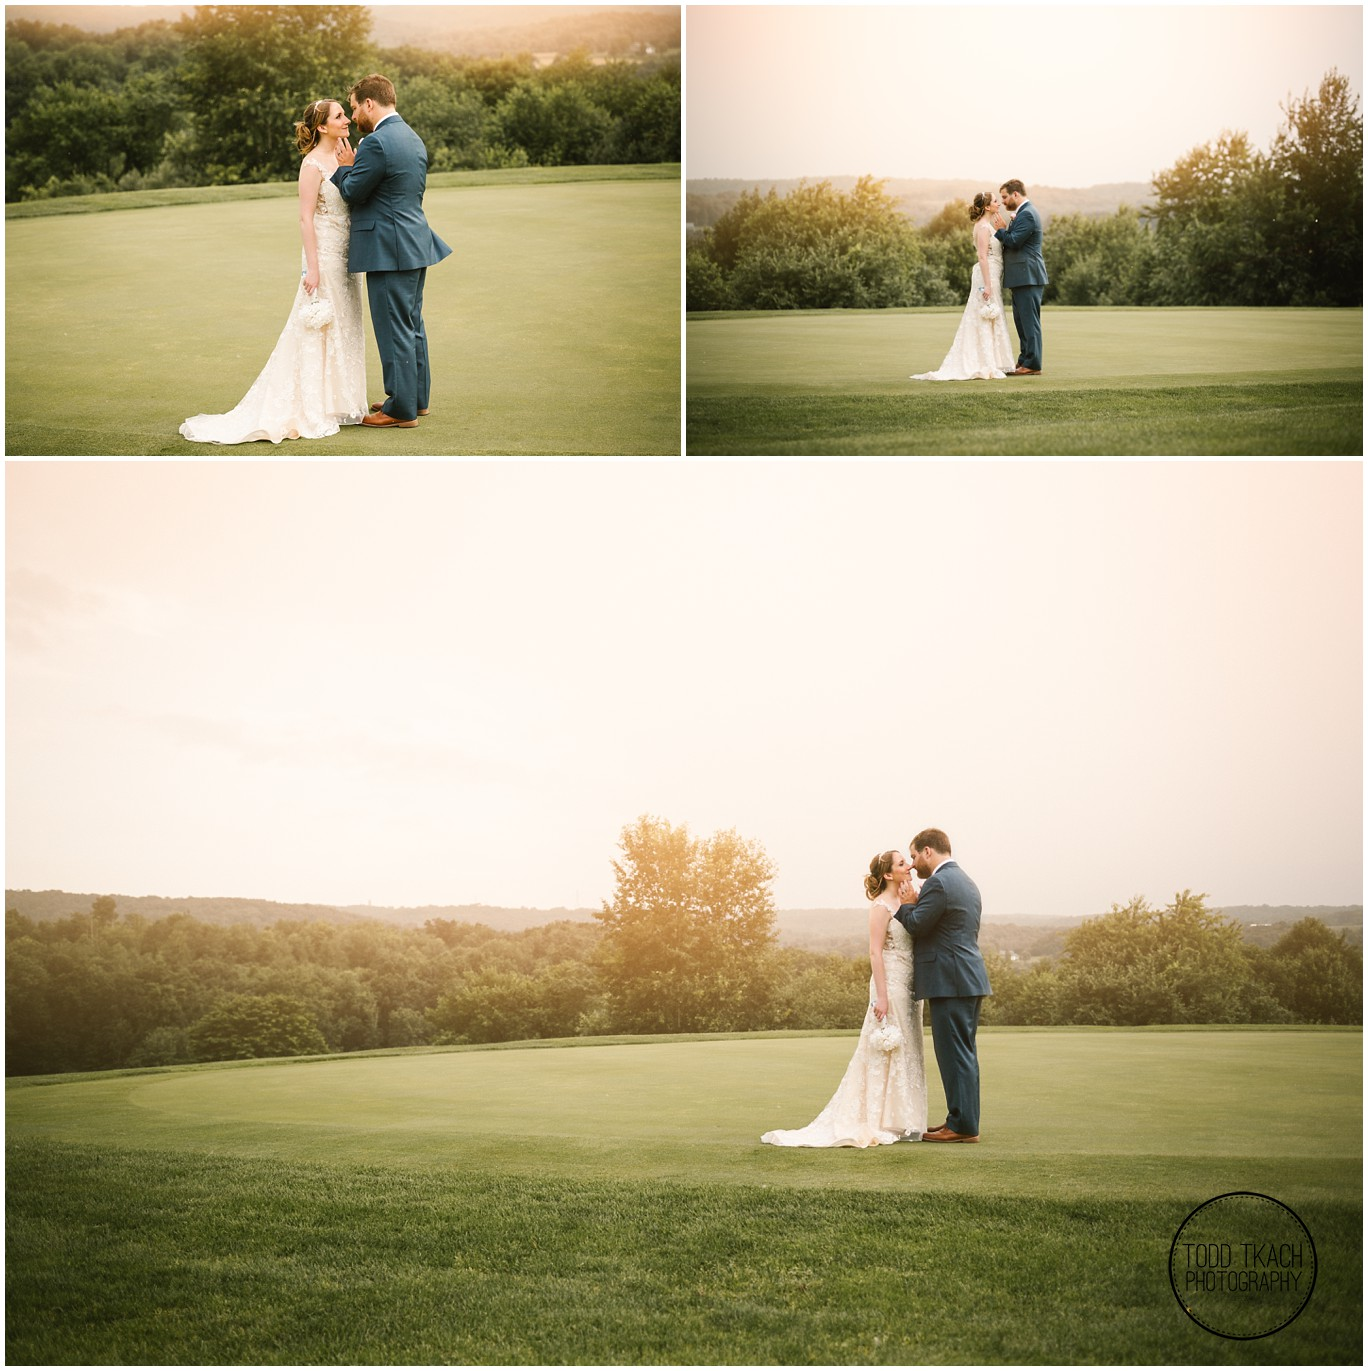 Phil & Caitlin - Seven Oaks - Sunset Collage